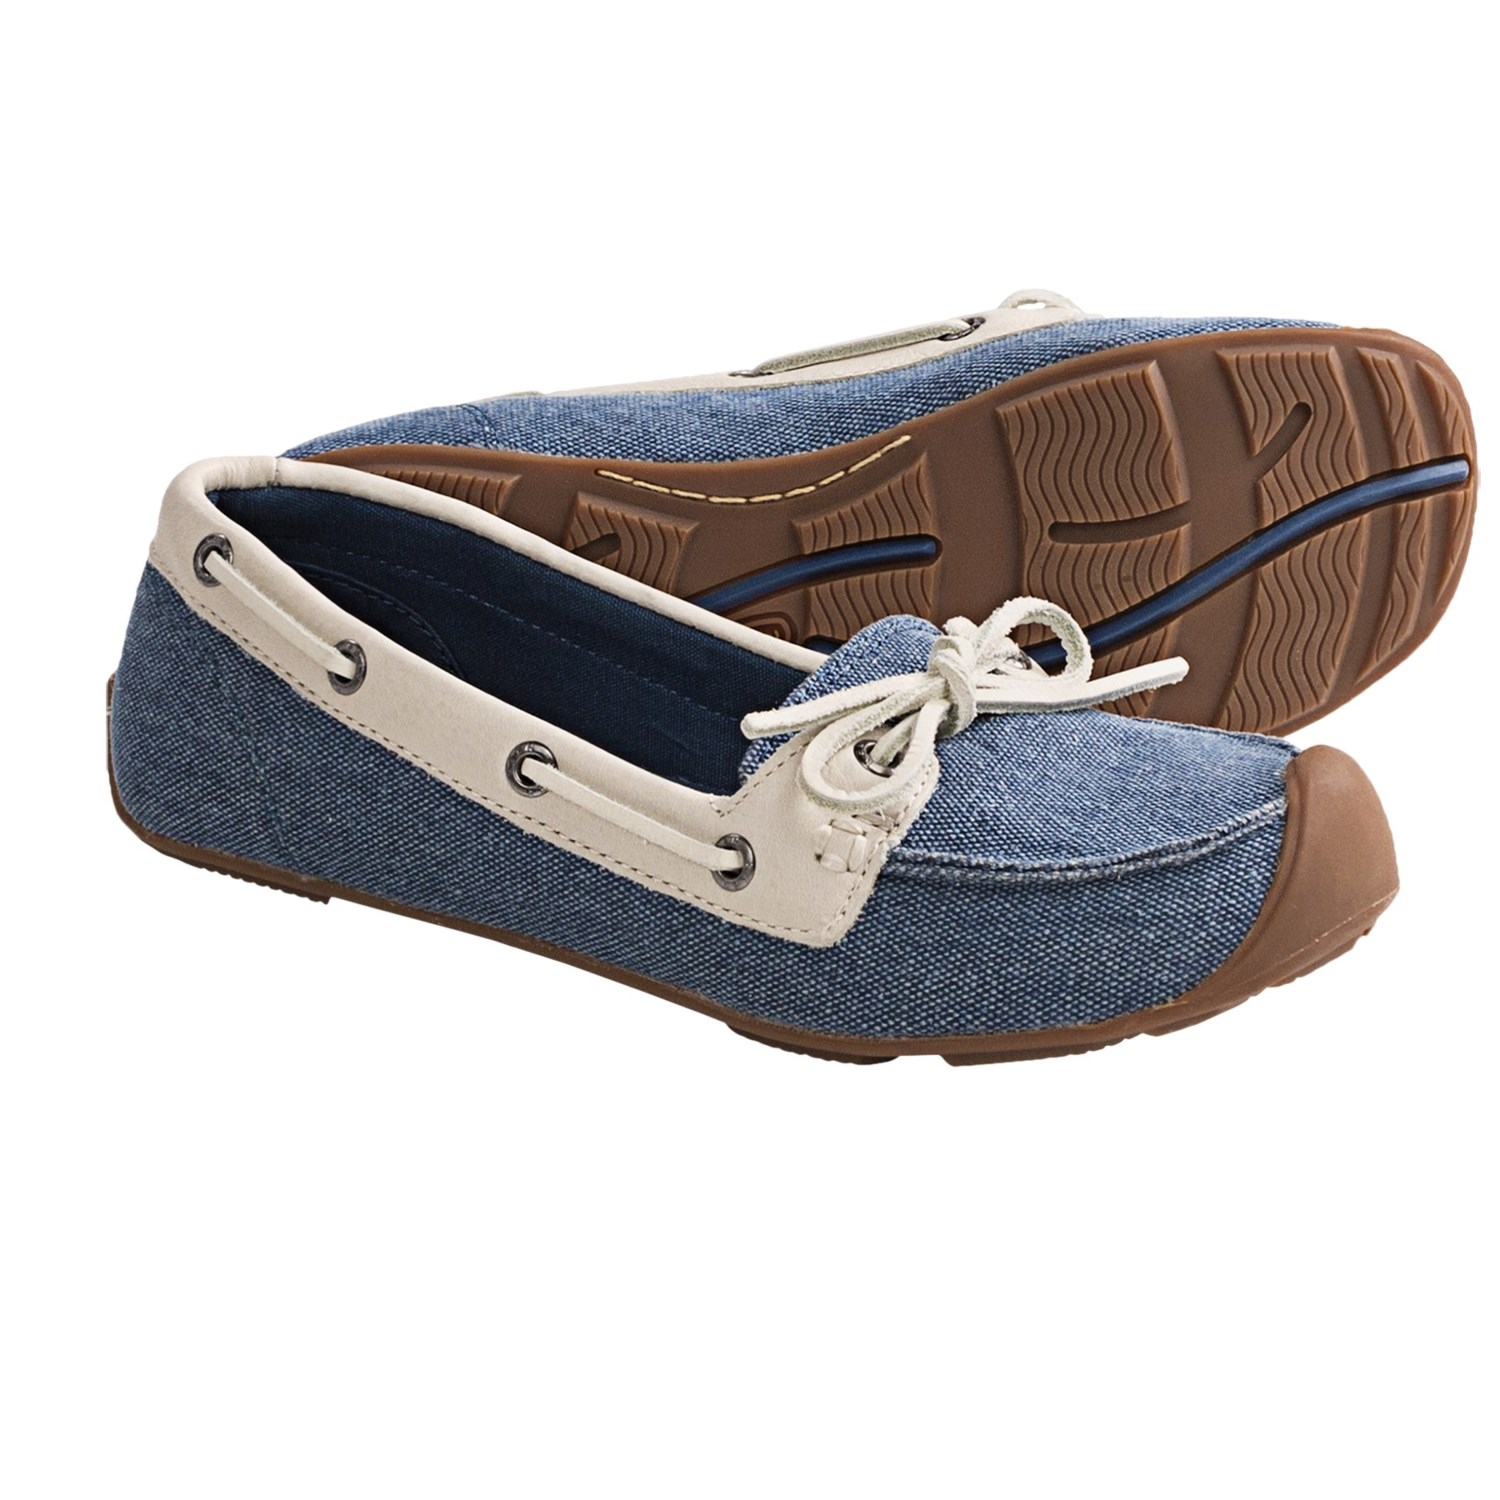 Keen Catalina Canvas Boat Shoes (For Women) in Ensign Blue/Whisper